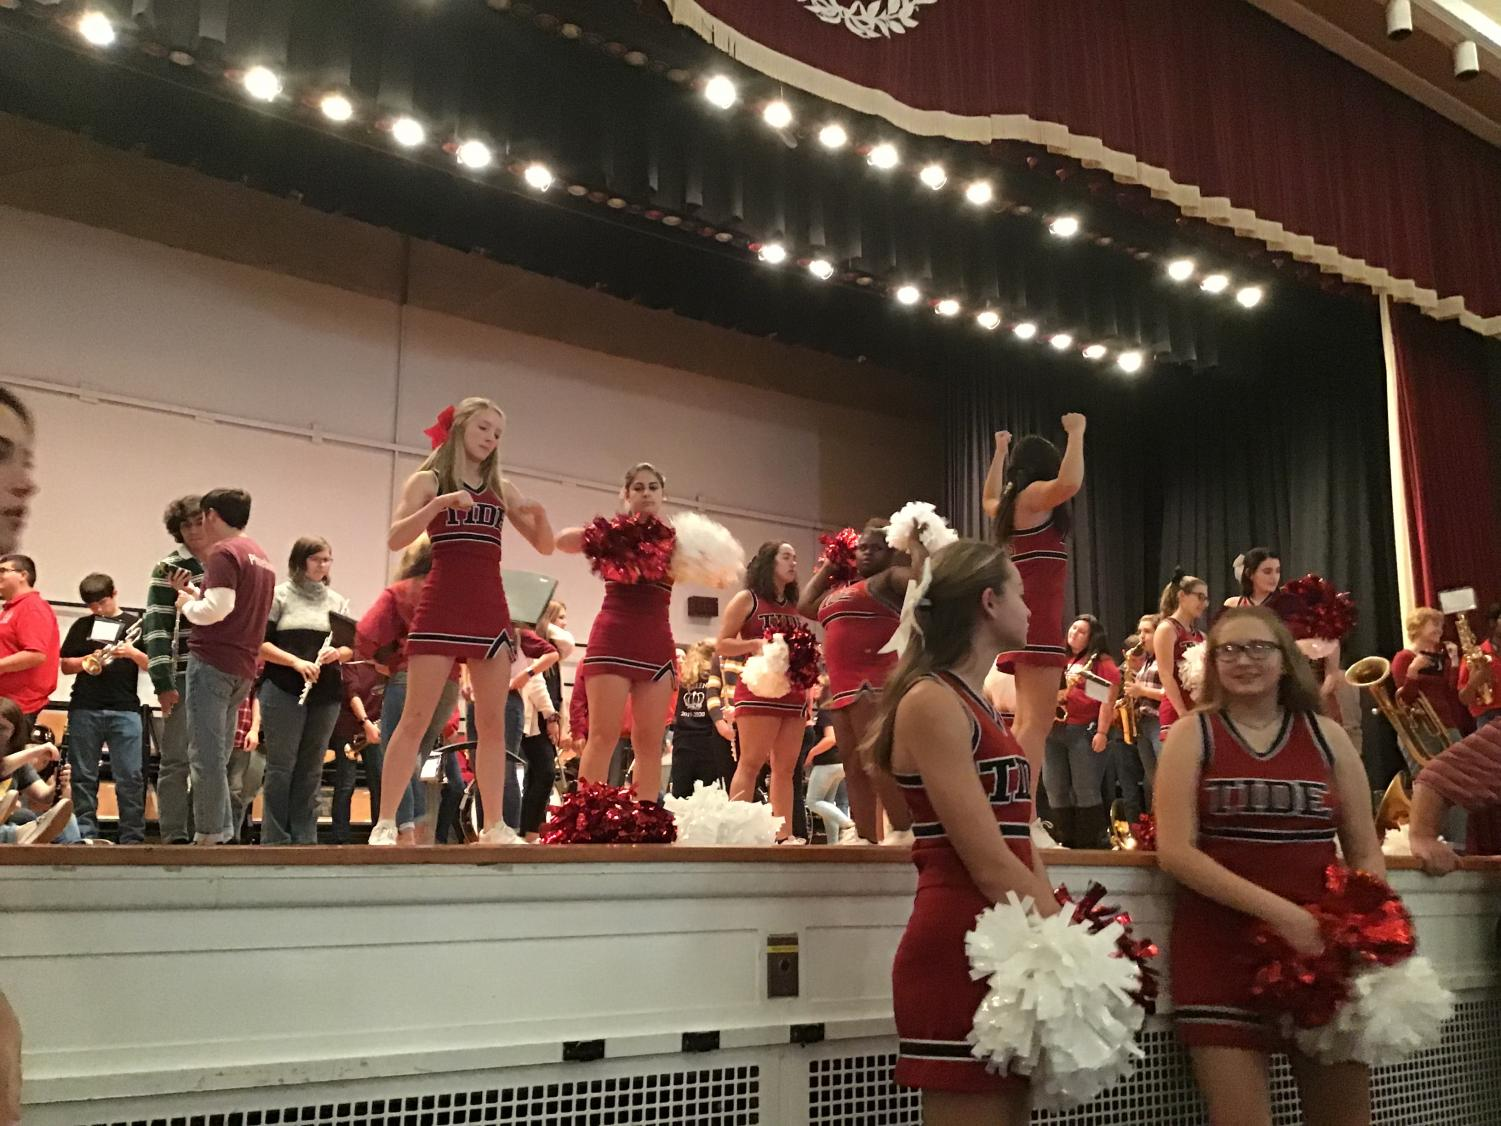 """Cheerleaders get ready to perform for the pep rally on stage in the auditorium. Tiana Green said, """" My favorite cheer we perform is of course everyone's favorite 'Give a Yell'. Everyone goes crazy and it's the best cheer around in my opinion""""."""